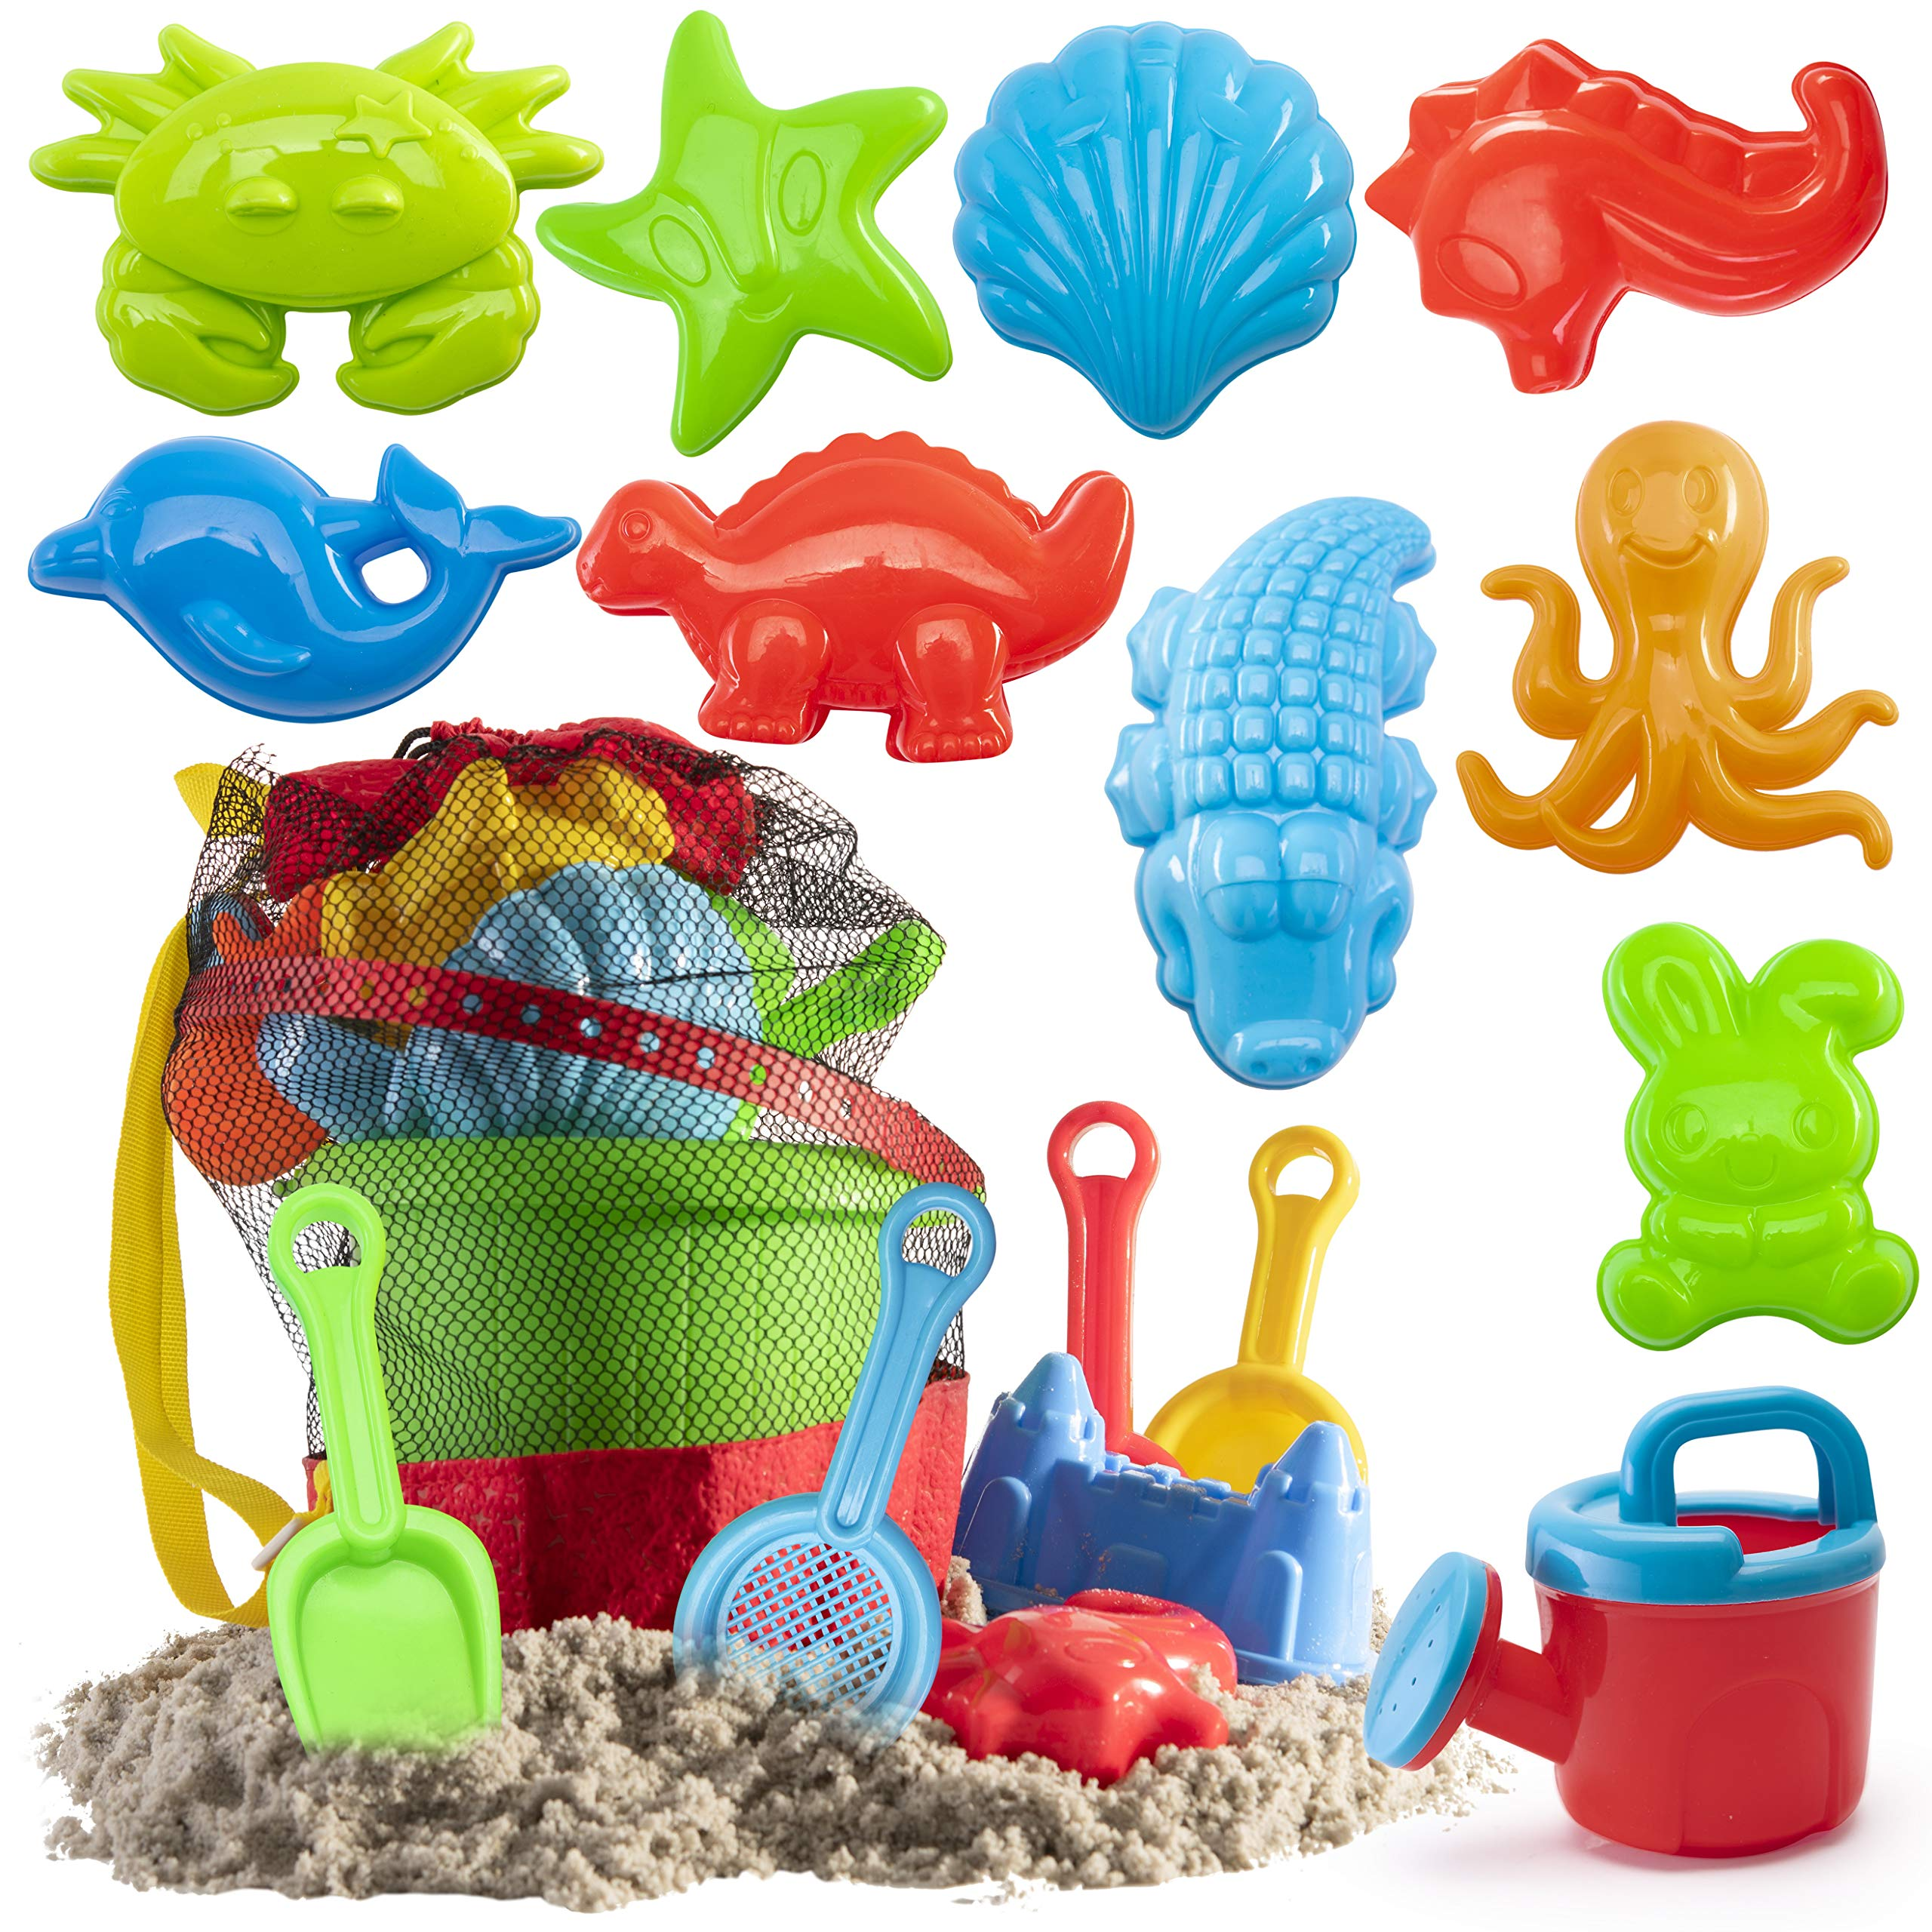 Prextex 19 Piece Beach Toys Sand Toys Set, Bucket with Sifter, Shovels, Rakes, Watering Can, Animal and Castle Molds in Drawstring Bag by Prextex